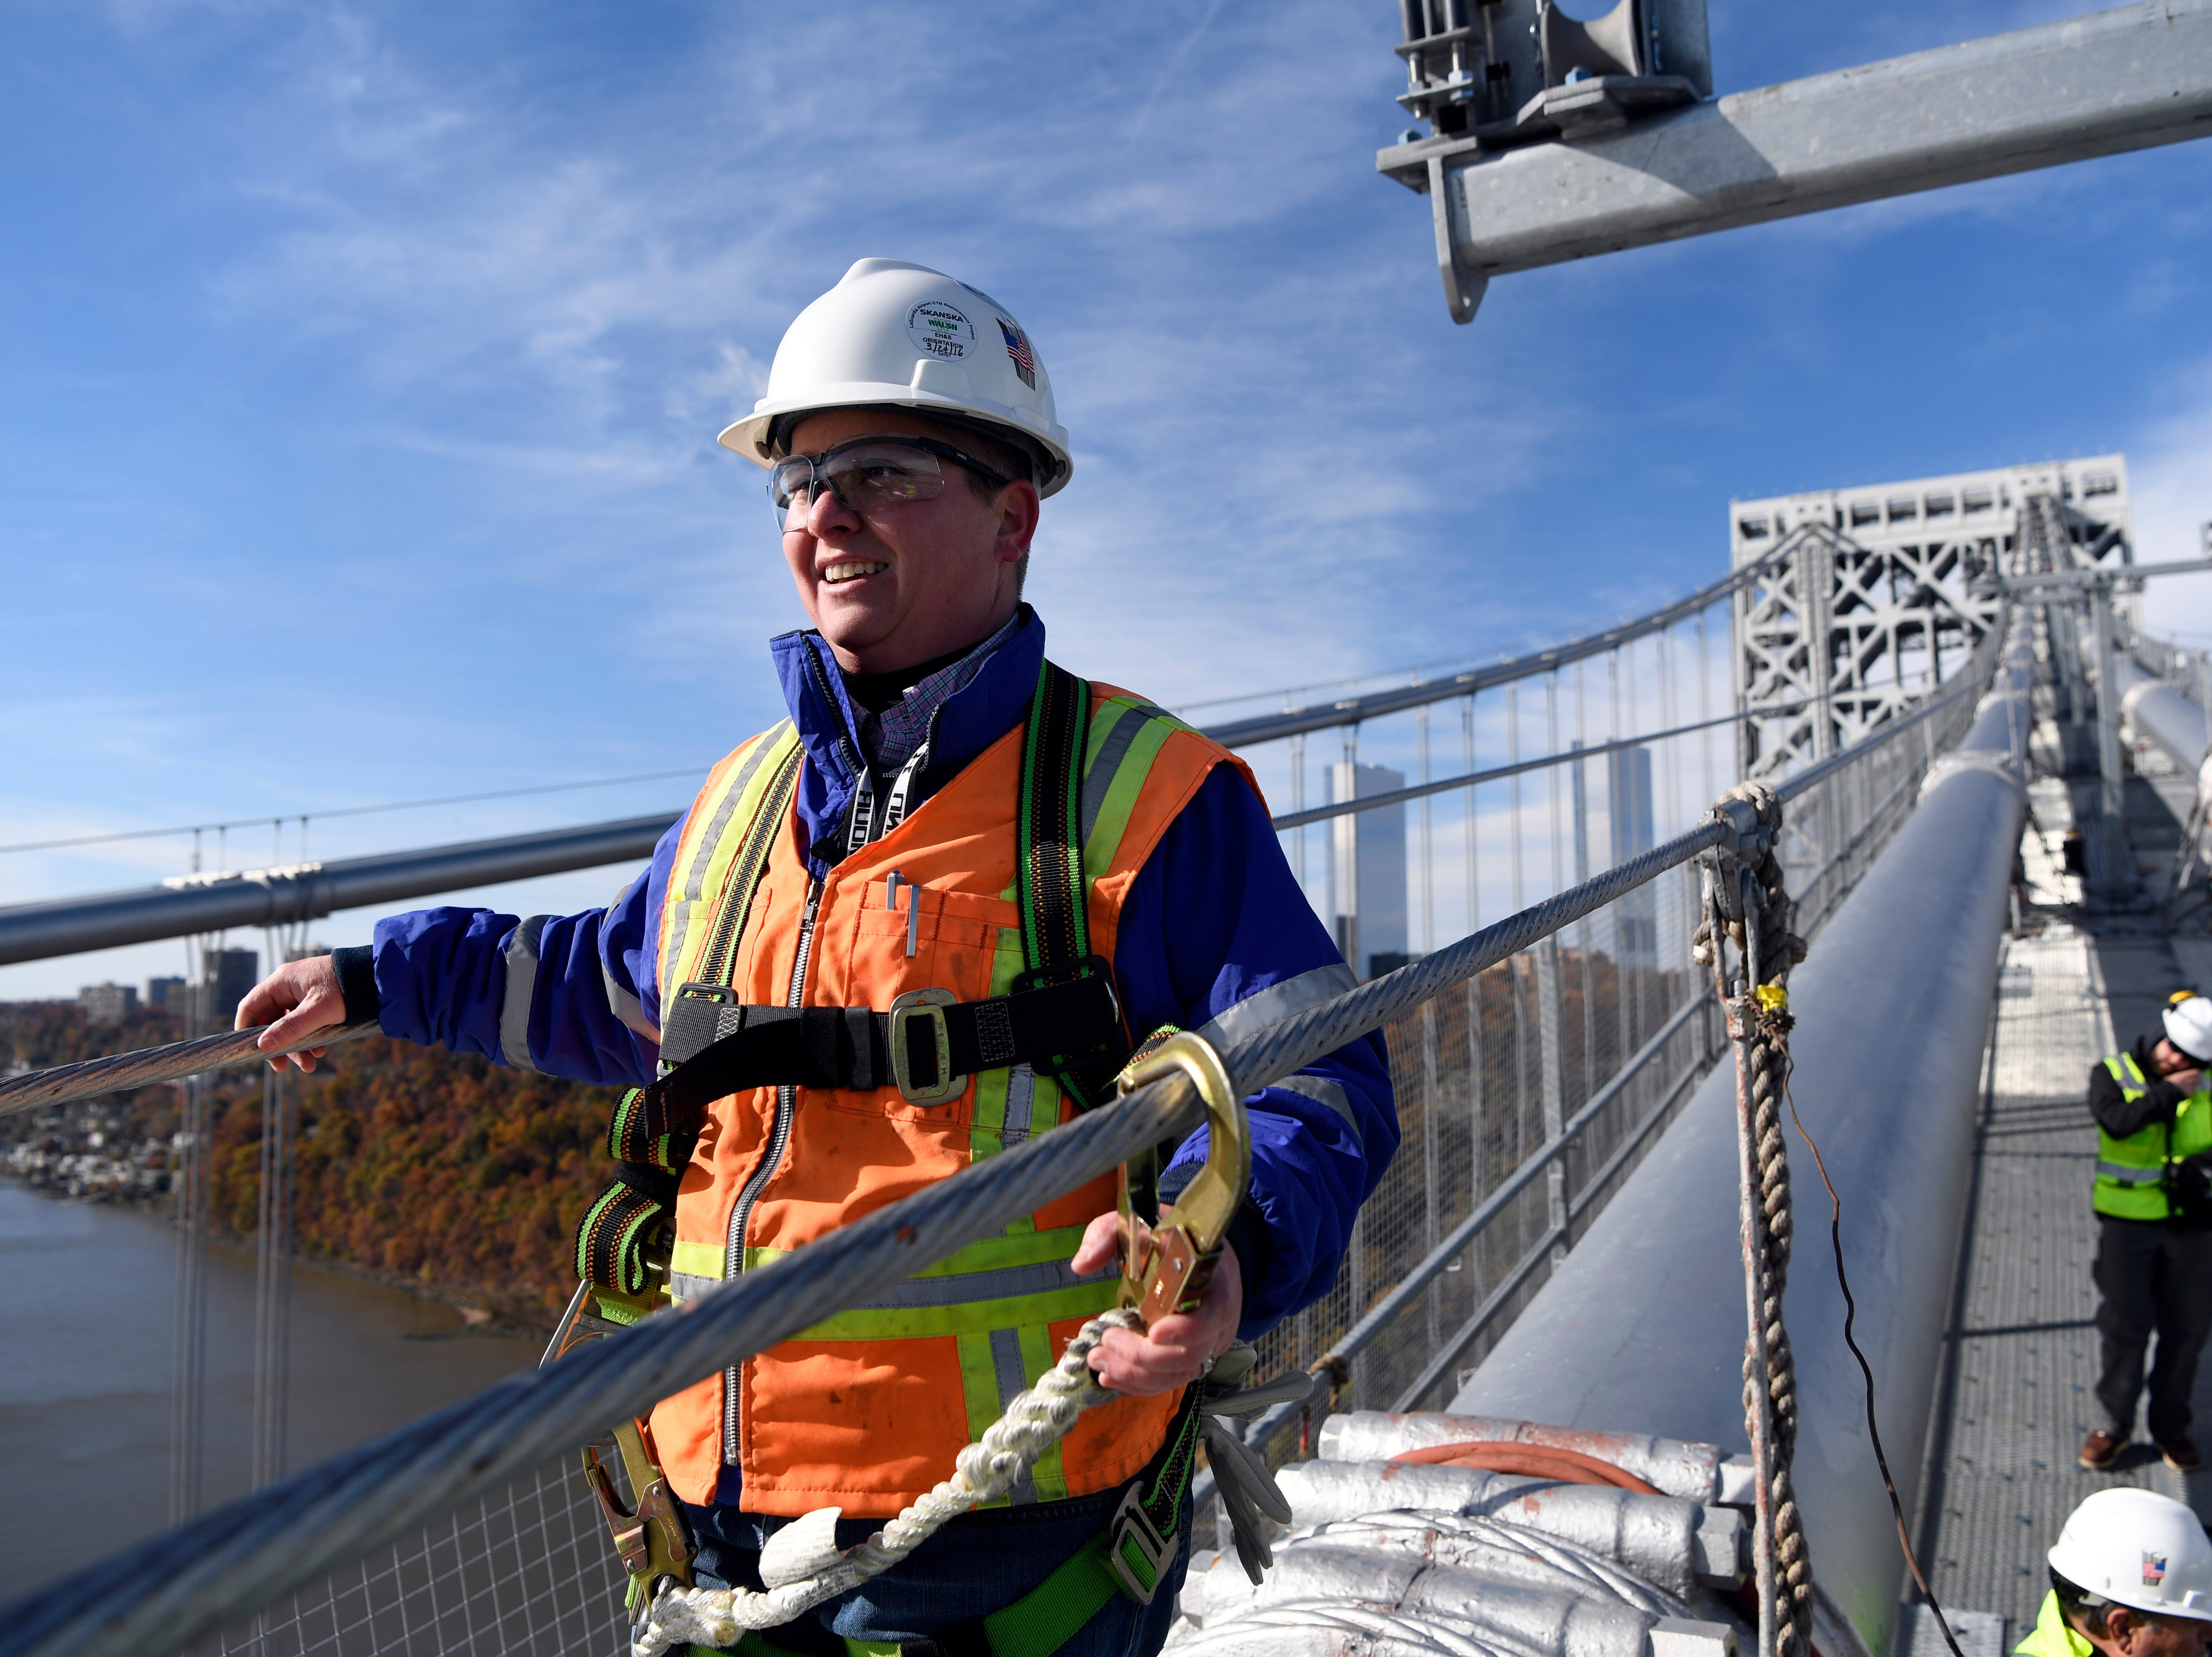 Amanda Rogers, senior engineer of construction, stands on one of the main cables of the George Washington Bridge on Wednesday, Nov. 14, 2018. The Port Authority estimates by 2025 the main cables will be rehabilitated, and all 592 suspender ropes will be replaced. All ropes and cables are original components of the bridge, built in 1927.